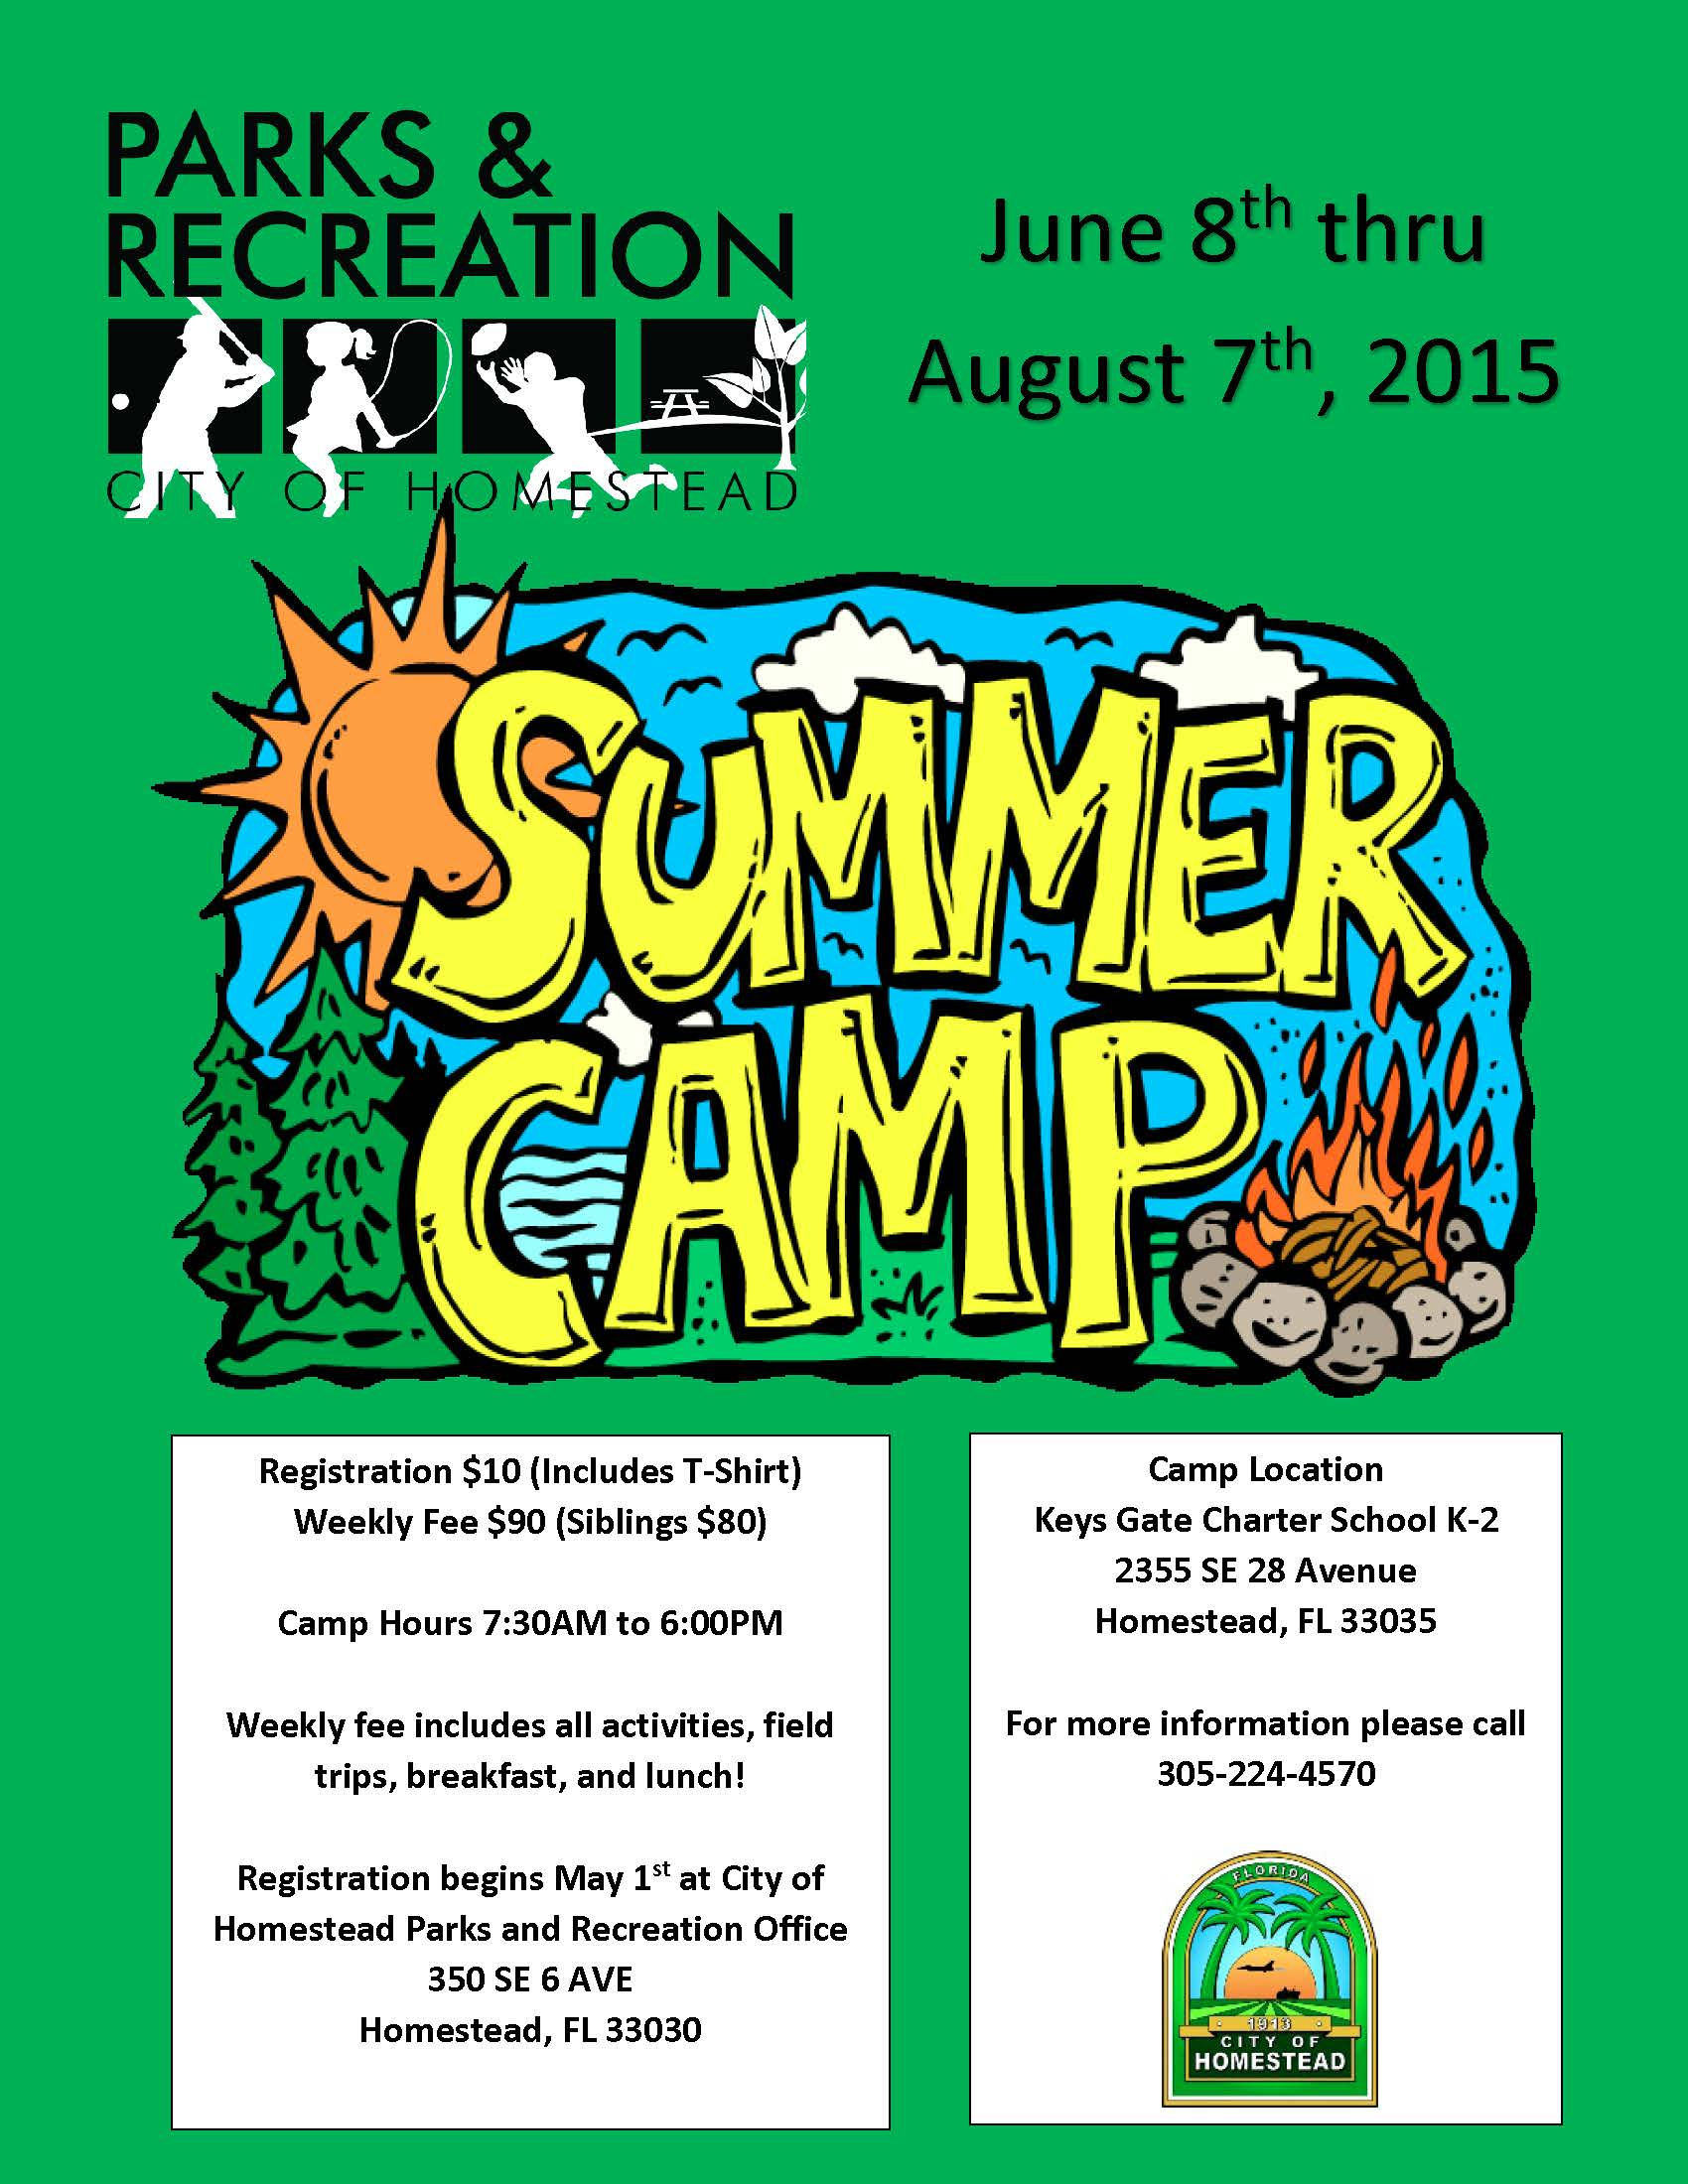 Parks and Recreation Summer Camp